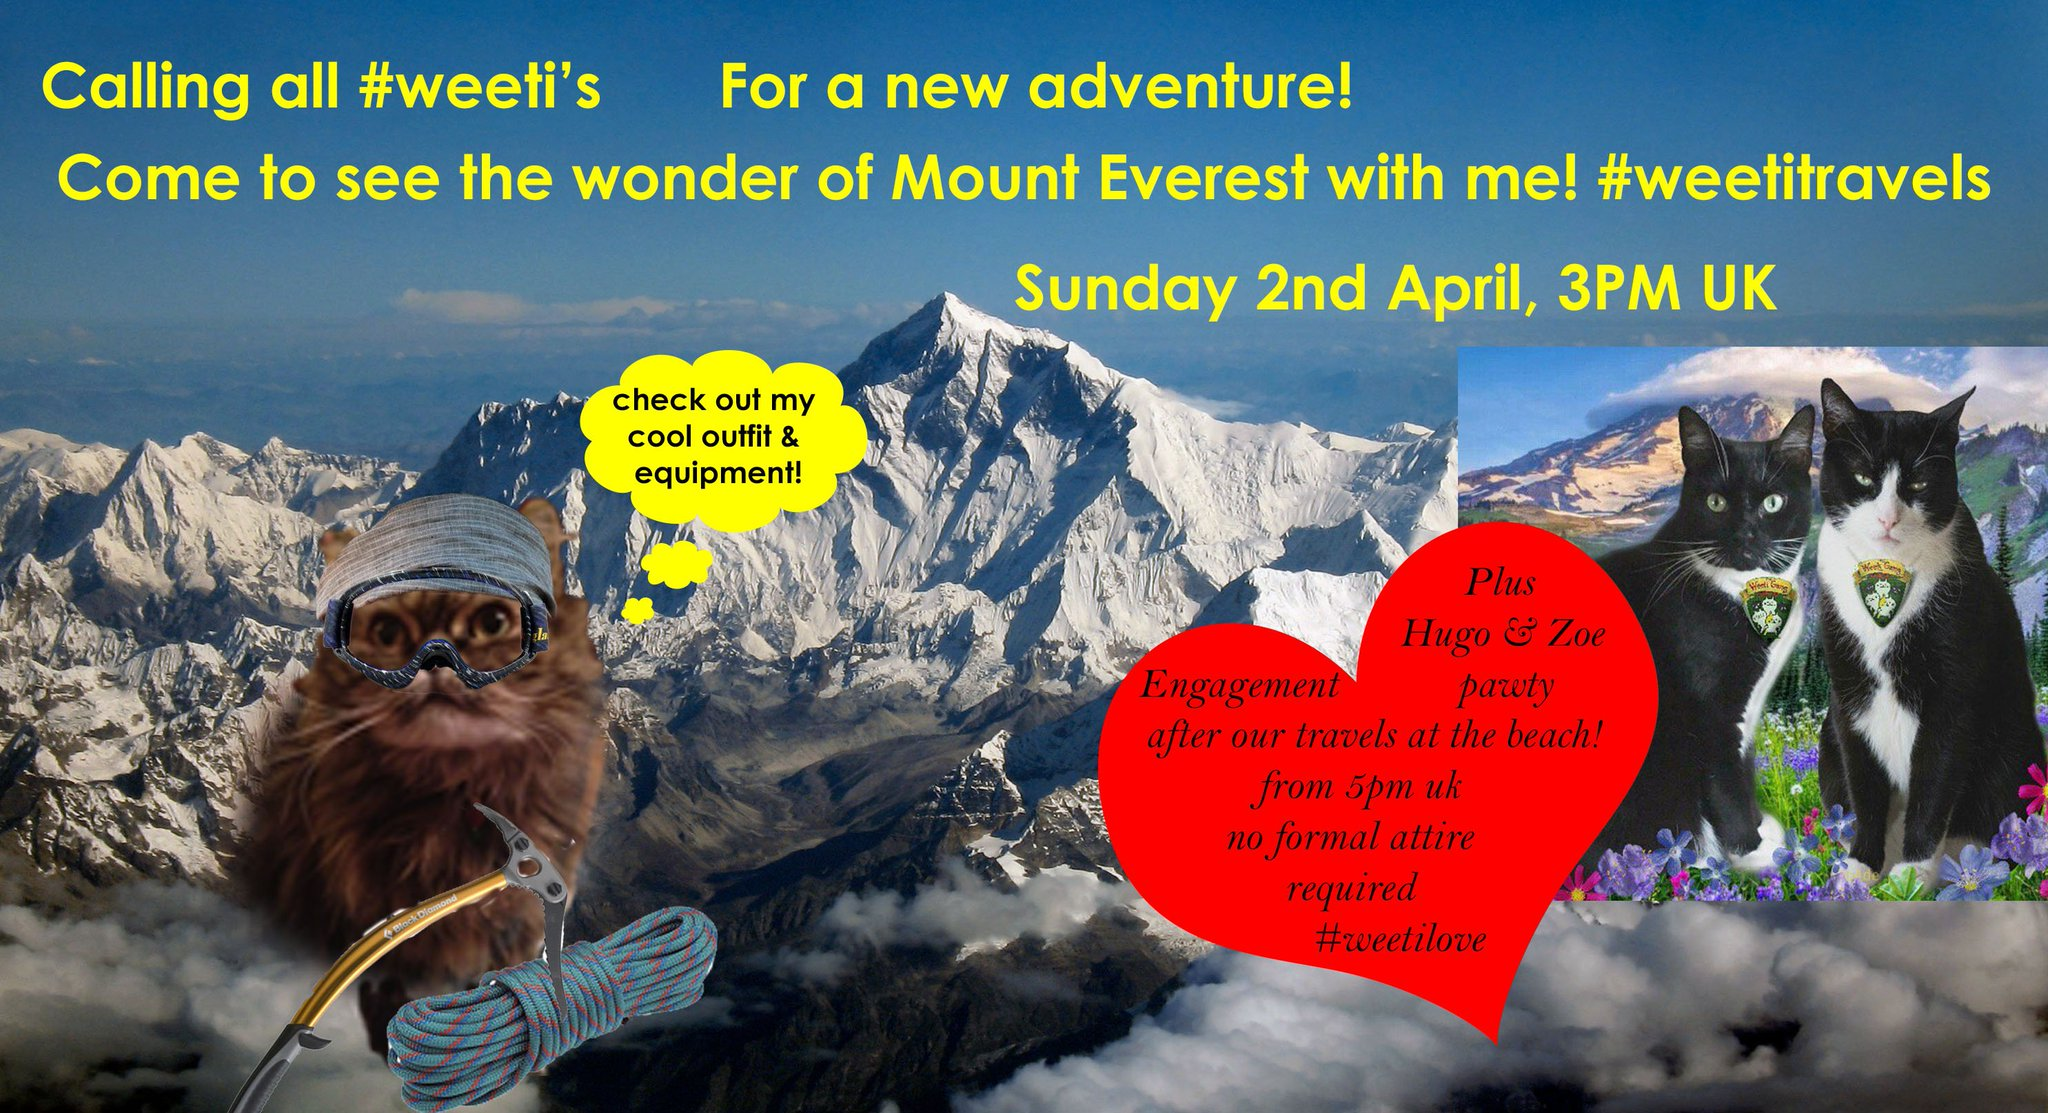 Thumbnail for #weetitravels Mt. Everest